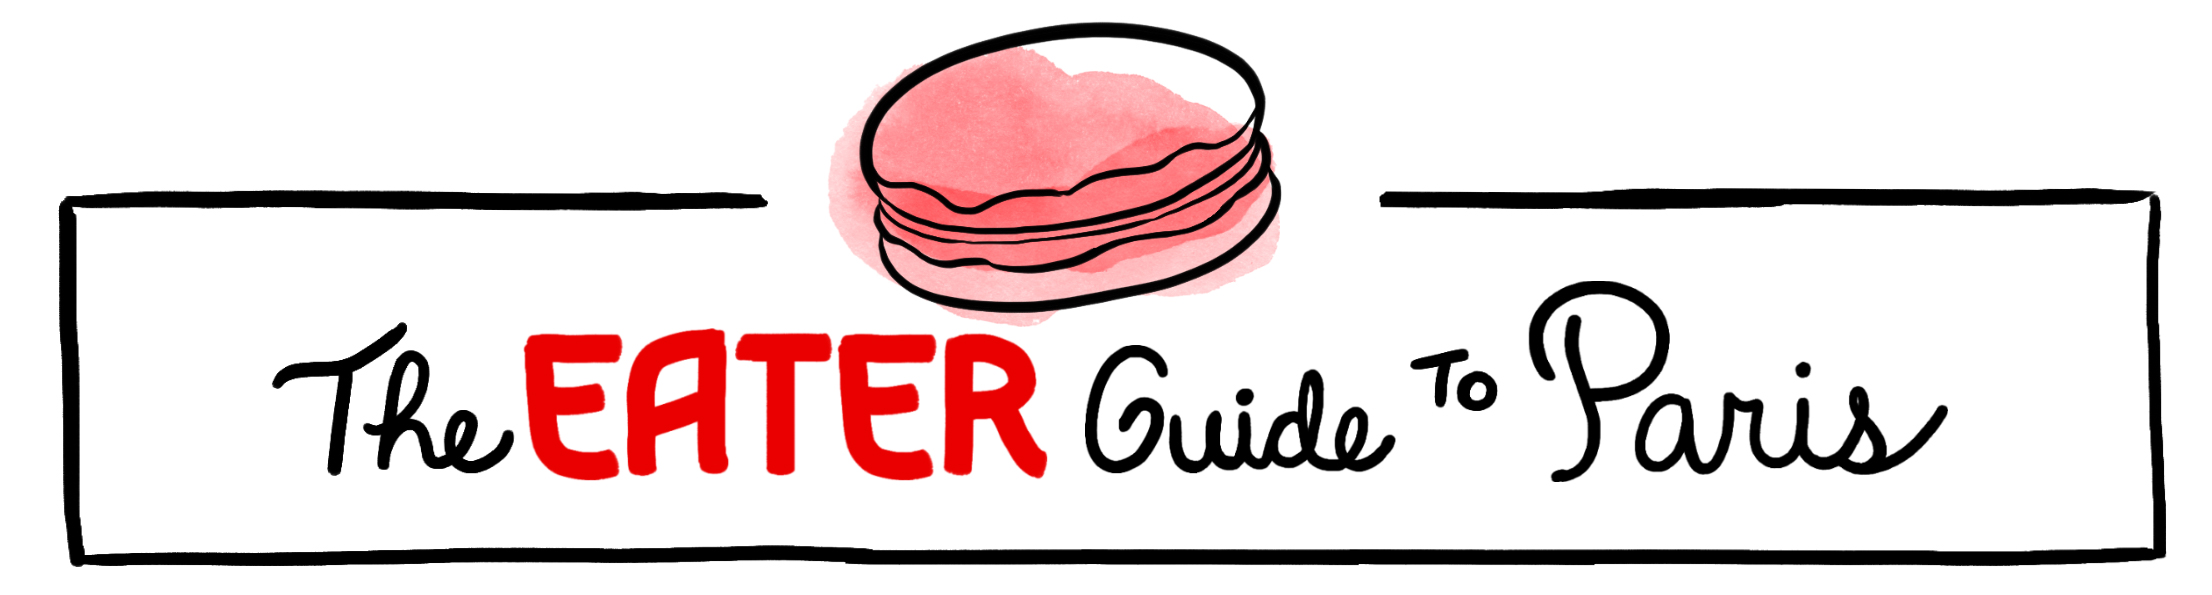 The Eater Guide to Paris - Eater